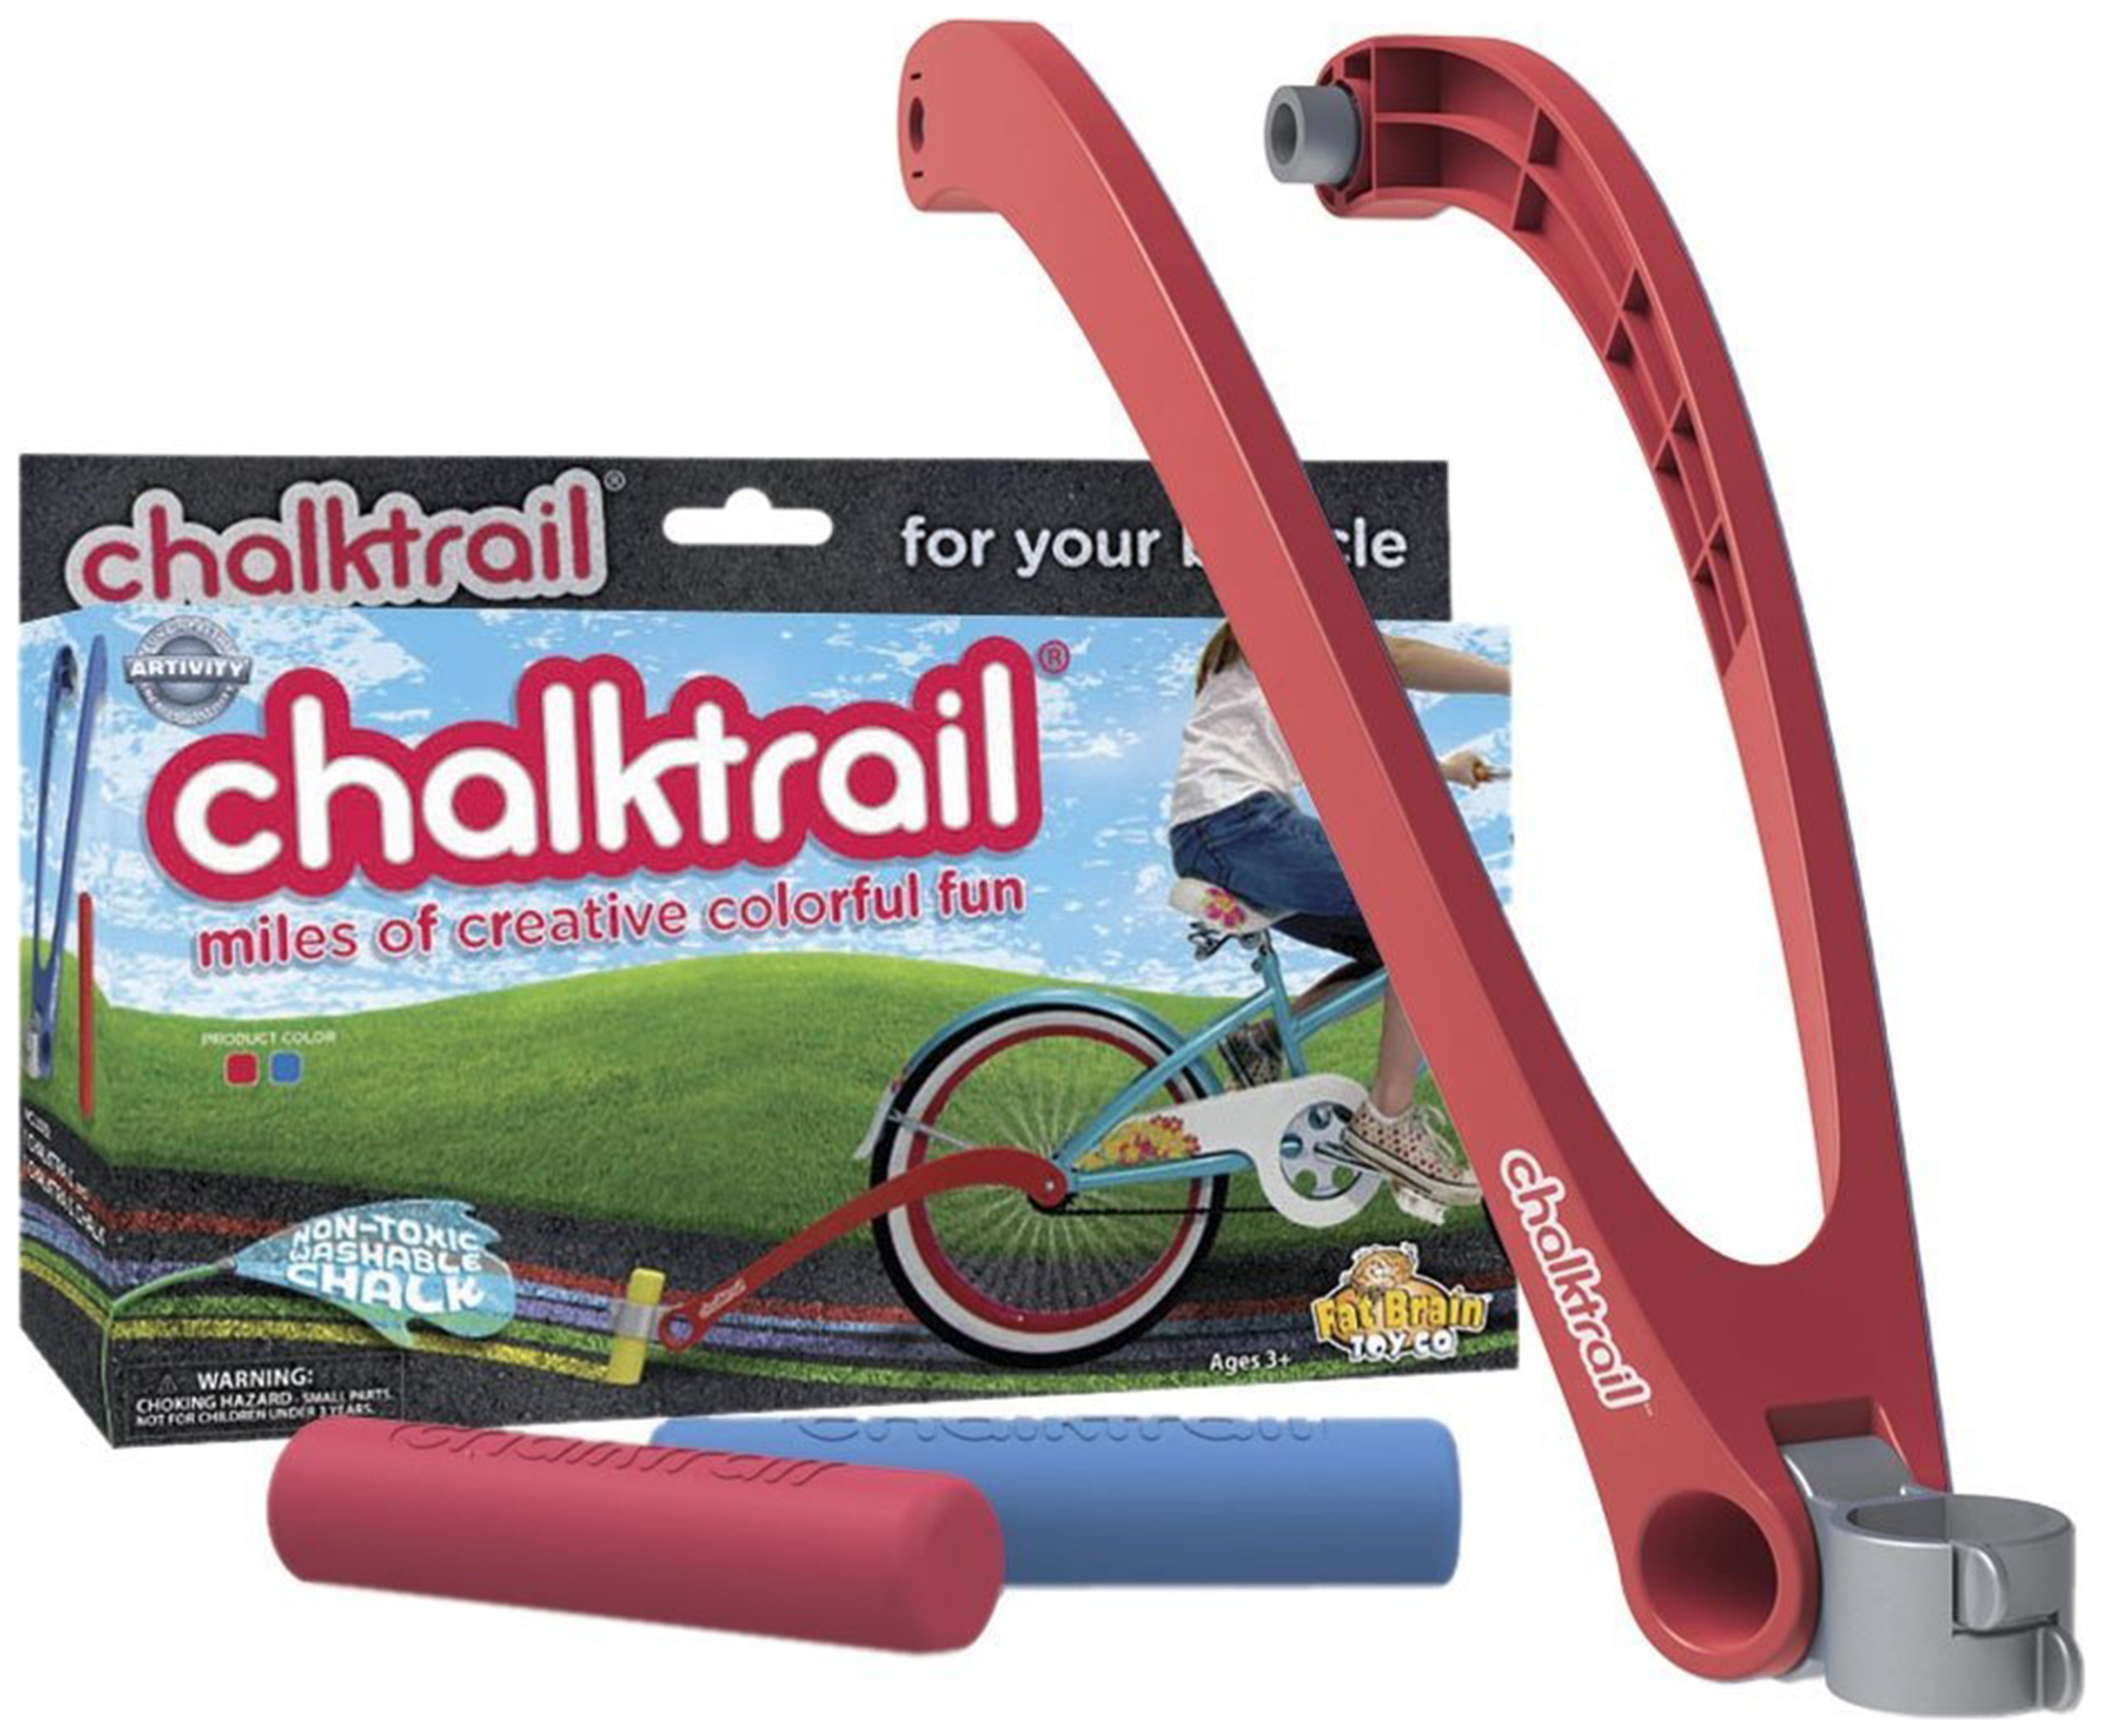 Image of Fat Brain Toys Chalktrail for Bikes - Red.